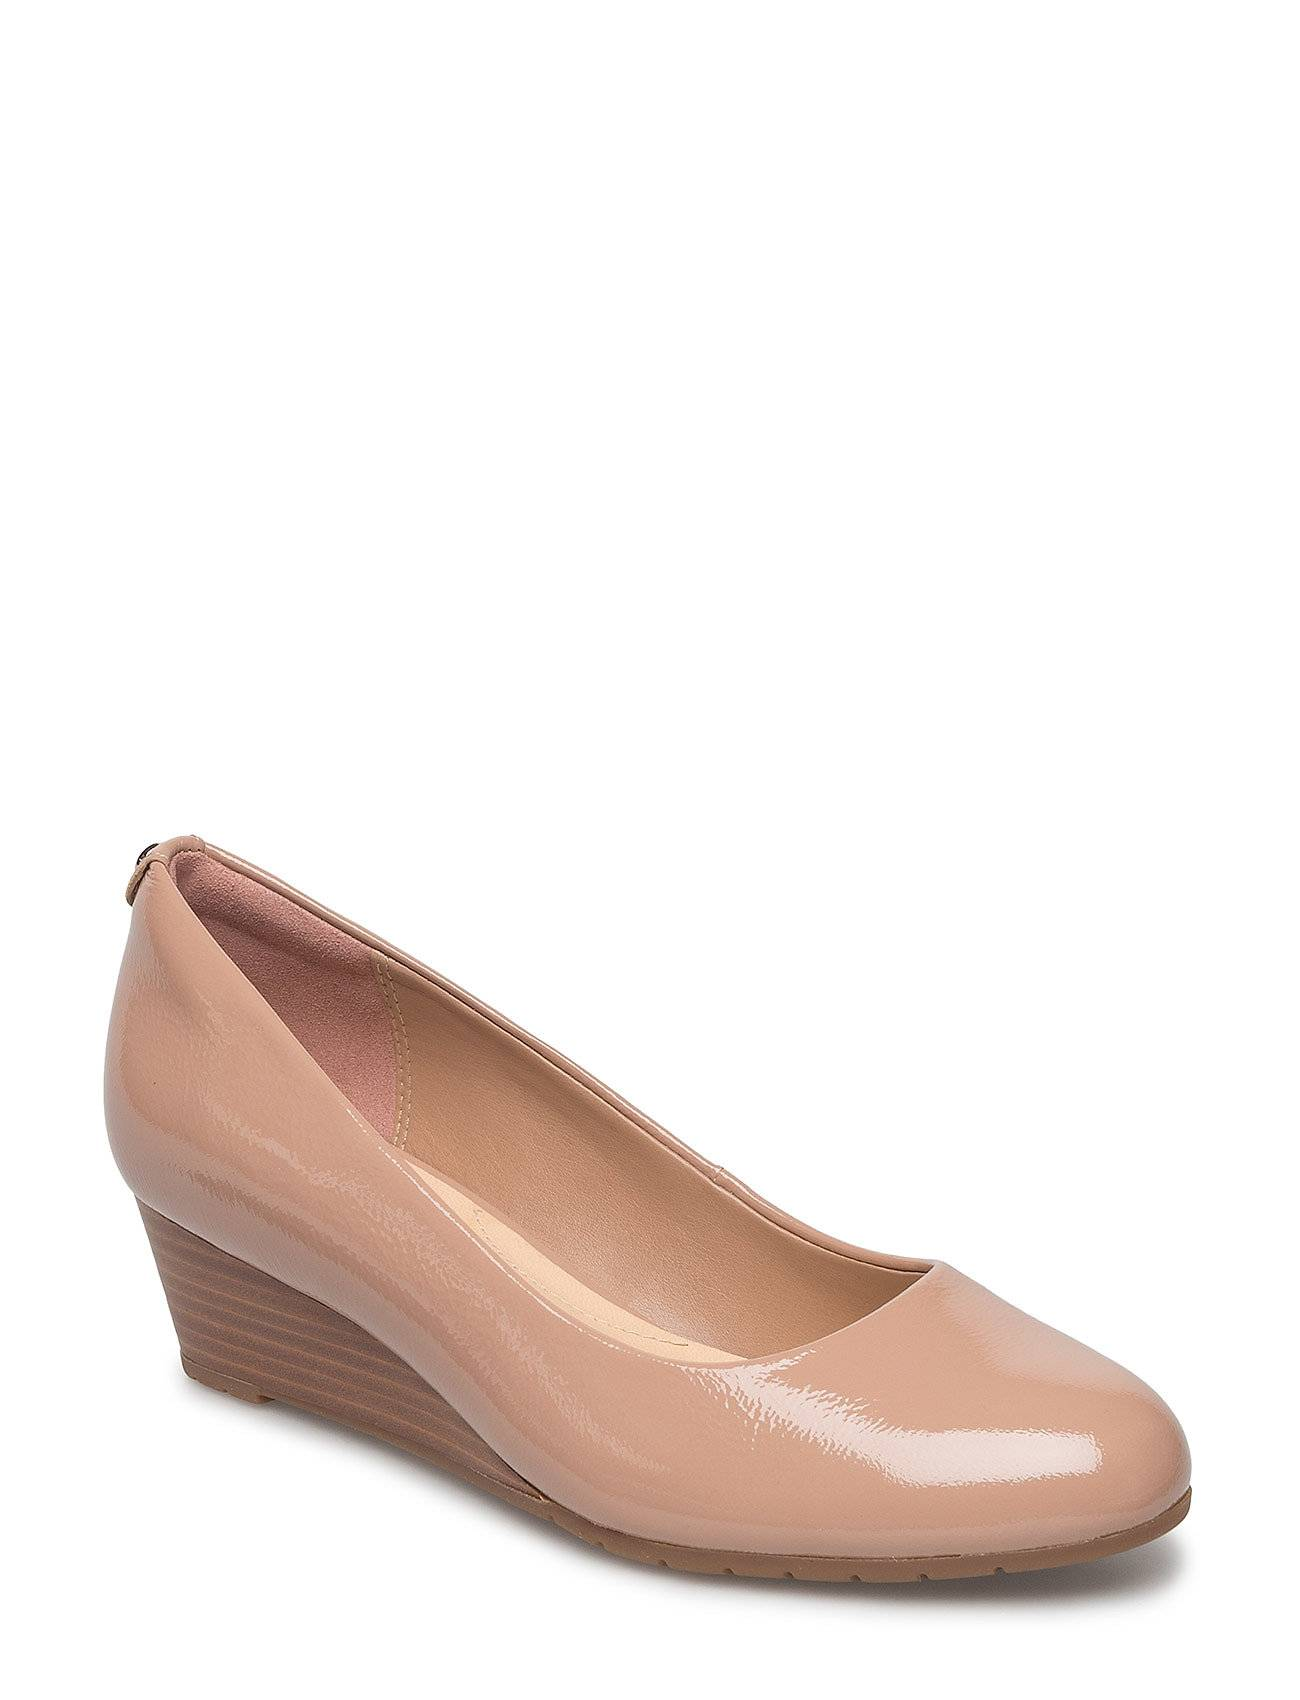 Clarks Vendra Bloom